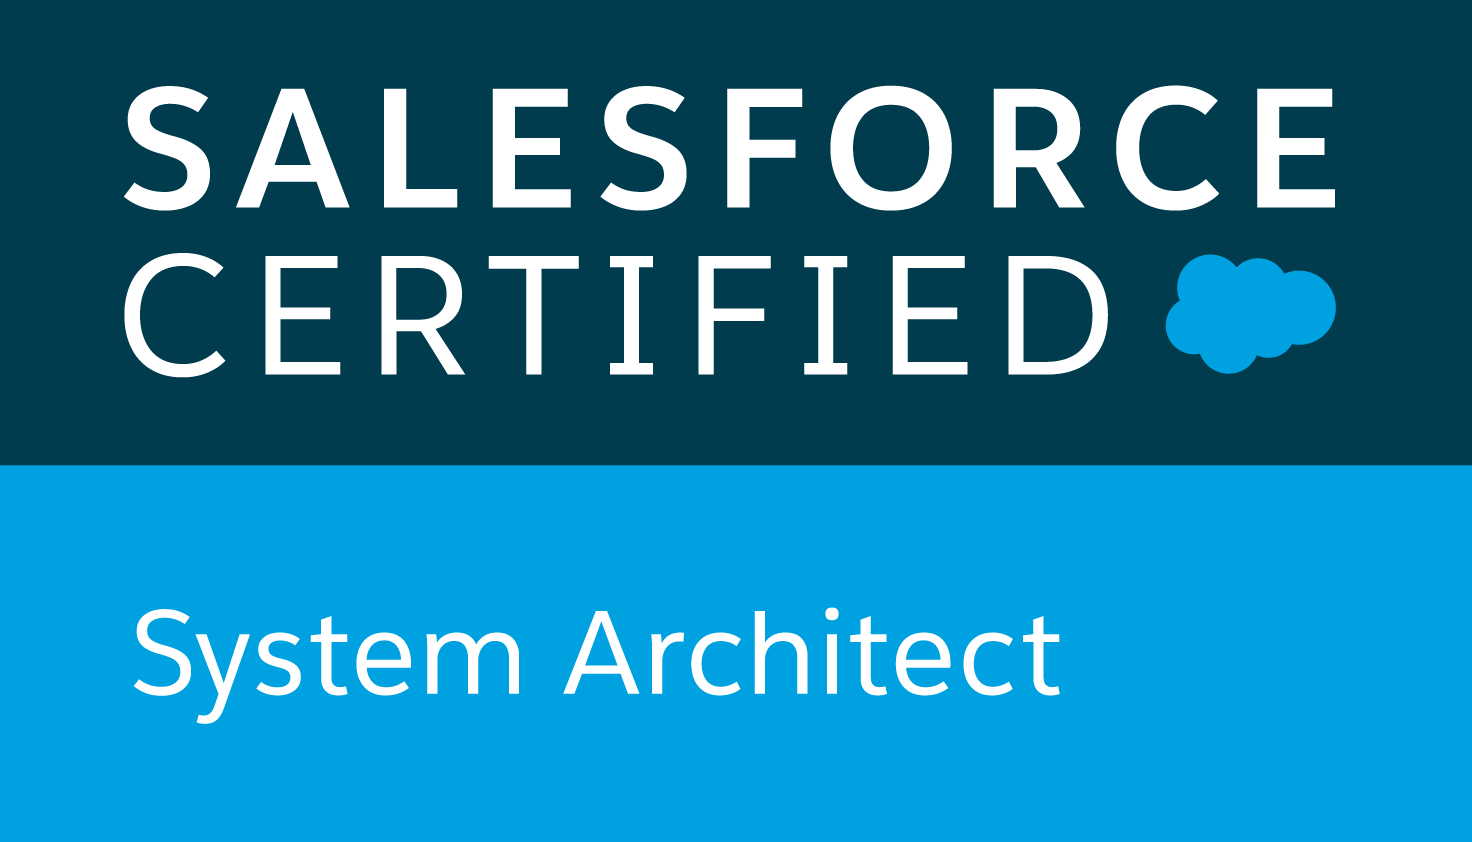 Certified Salesforce System Architect